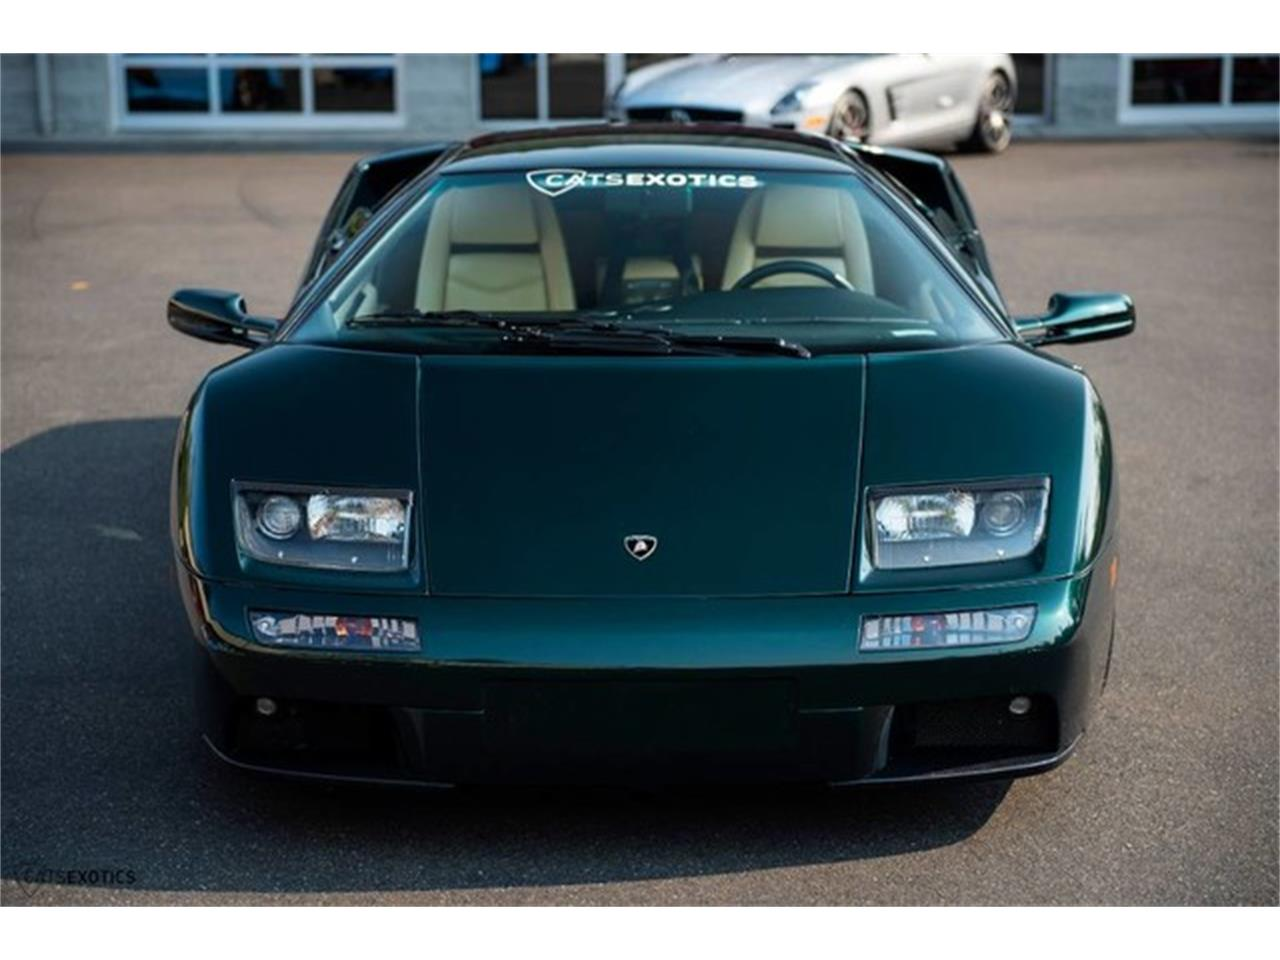 Large Picture of 2001 Lamborghini Diablo Offered by Cats Exotics - KWB9